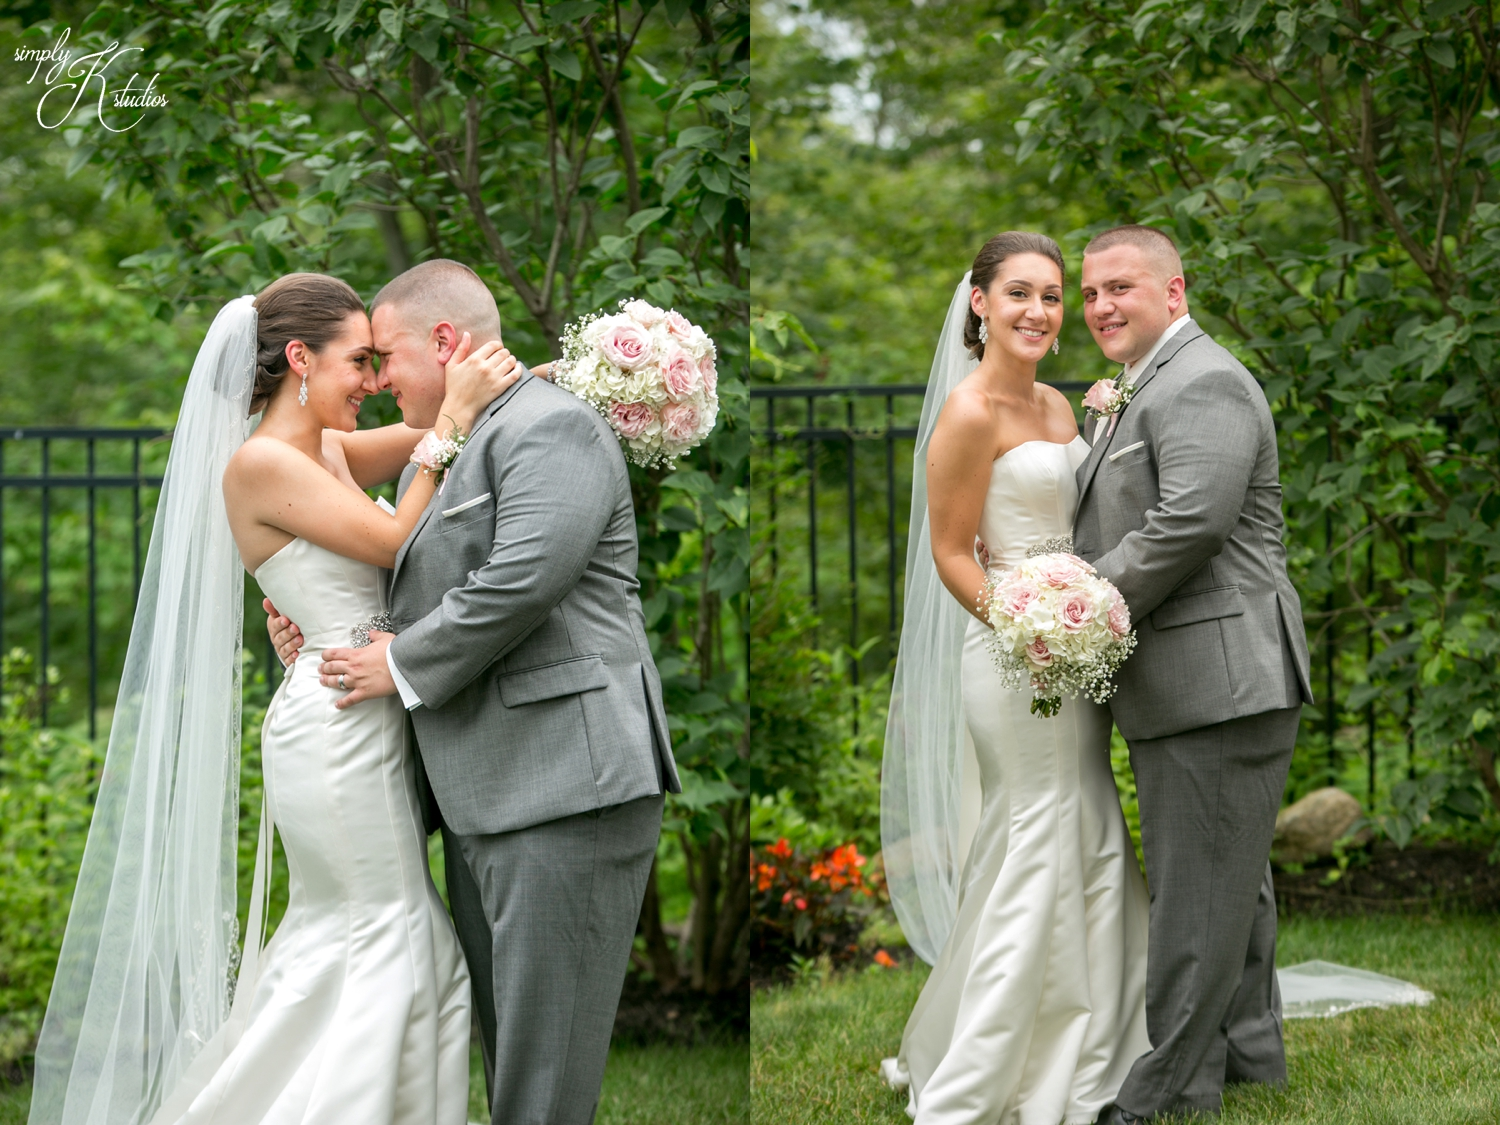 CTWeddingphotographers.jpg